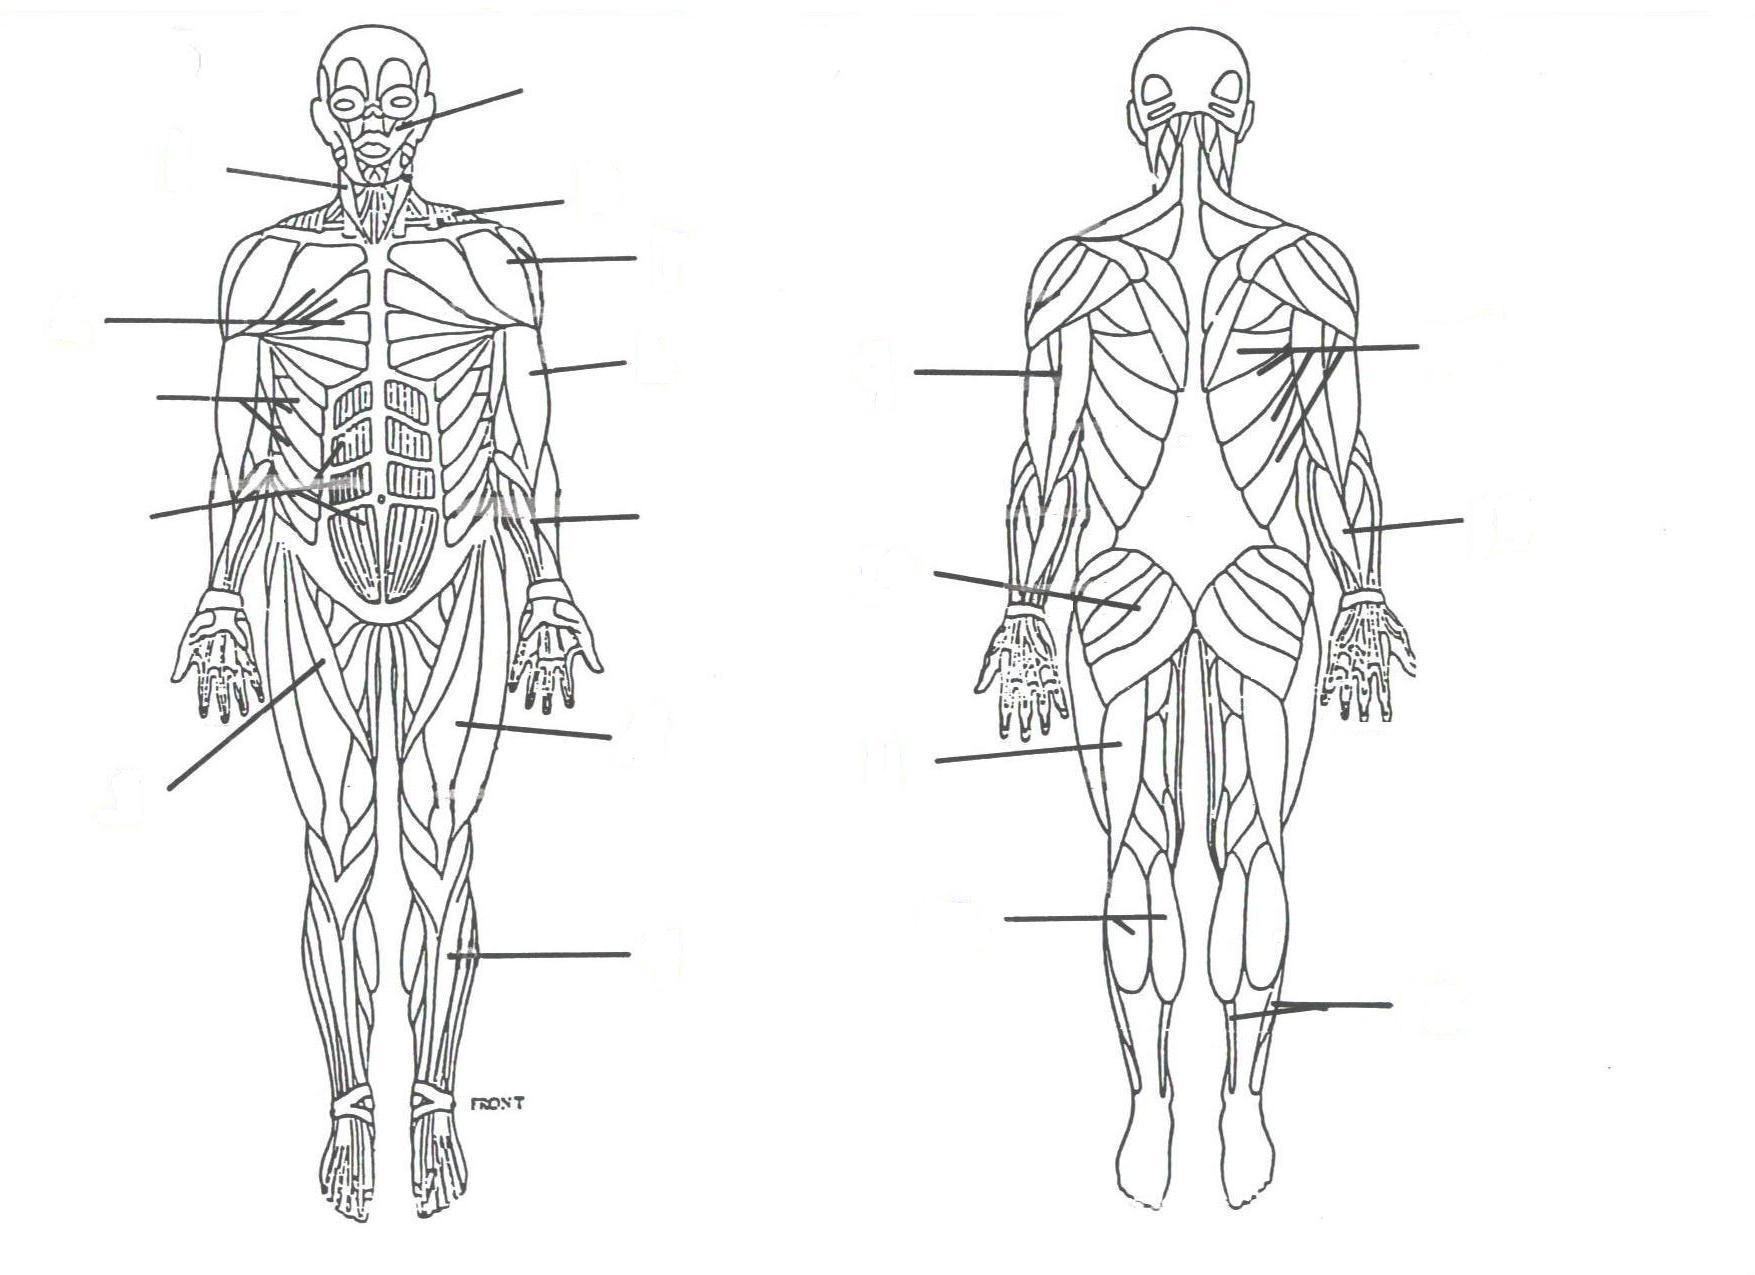 Muscular System Diagram Labeled For Kids Muscular System Diagram Labeled For Kids Muscular